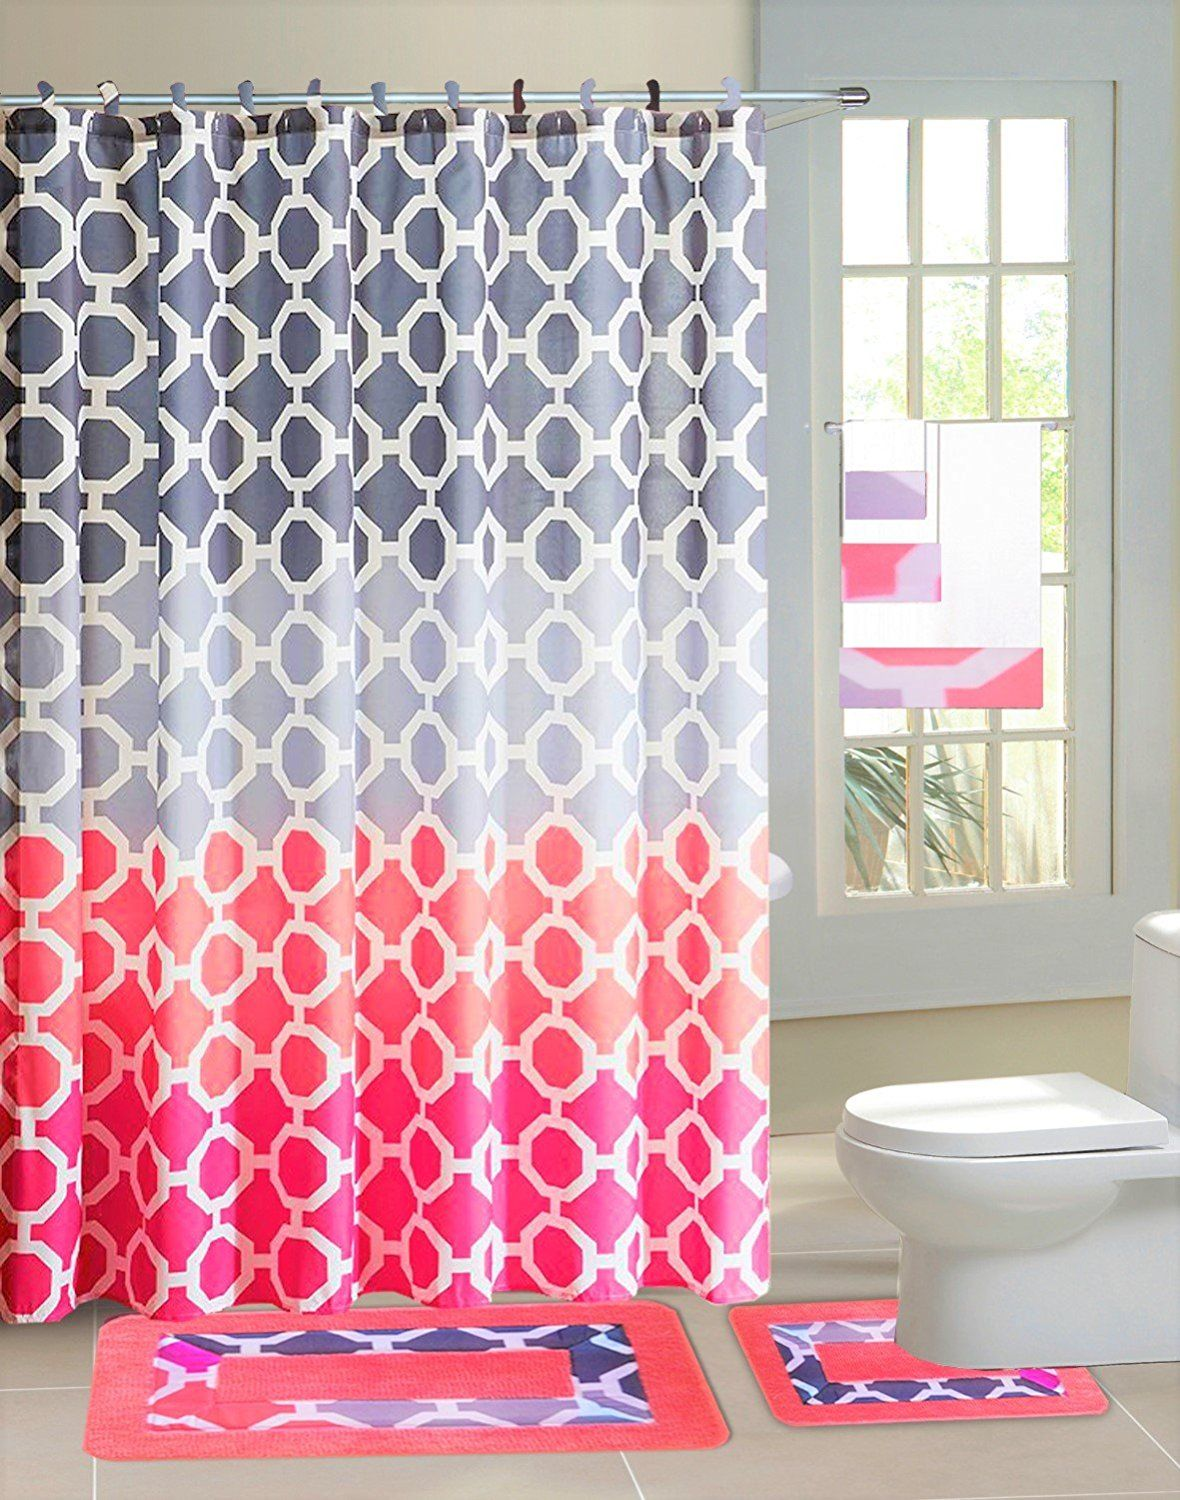 77 New Bathroom Shower Curtains Mats In 2020 Fabric Shower Curtains Pink Shower Curtains Bathroom Shower Curtains